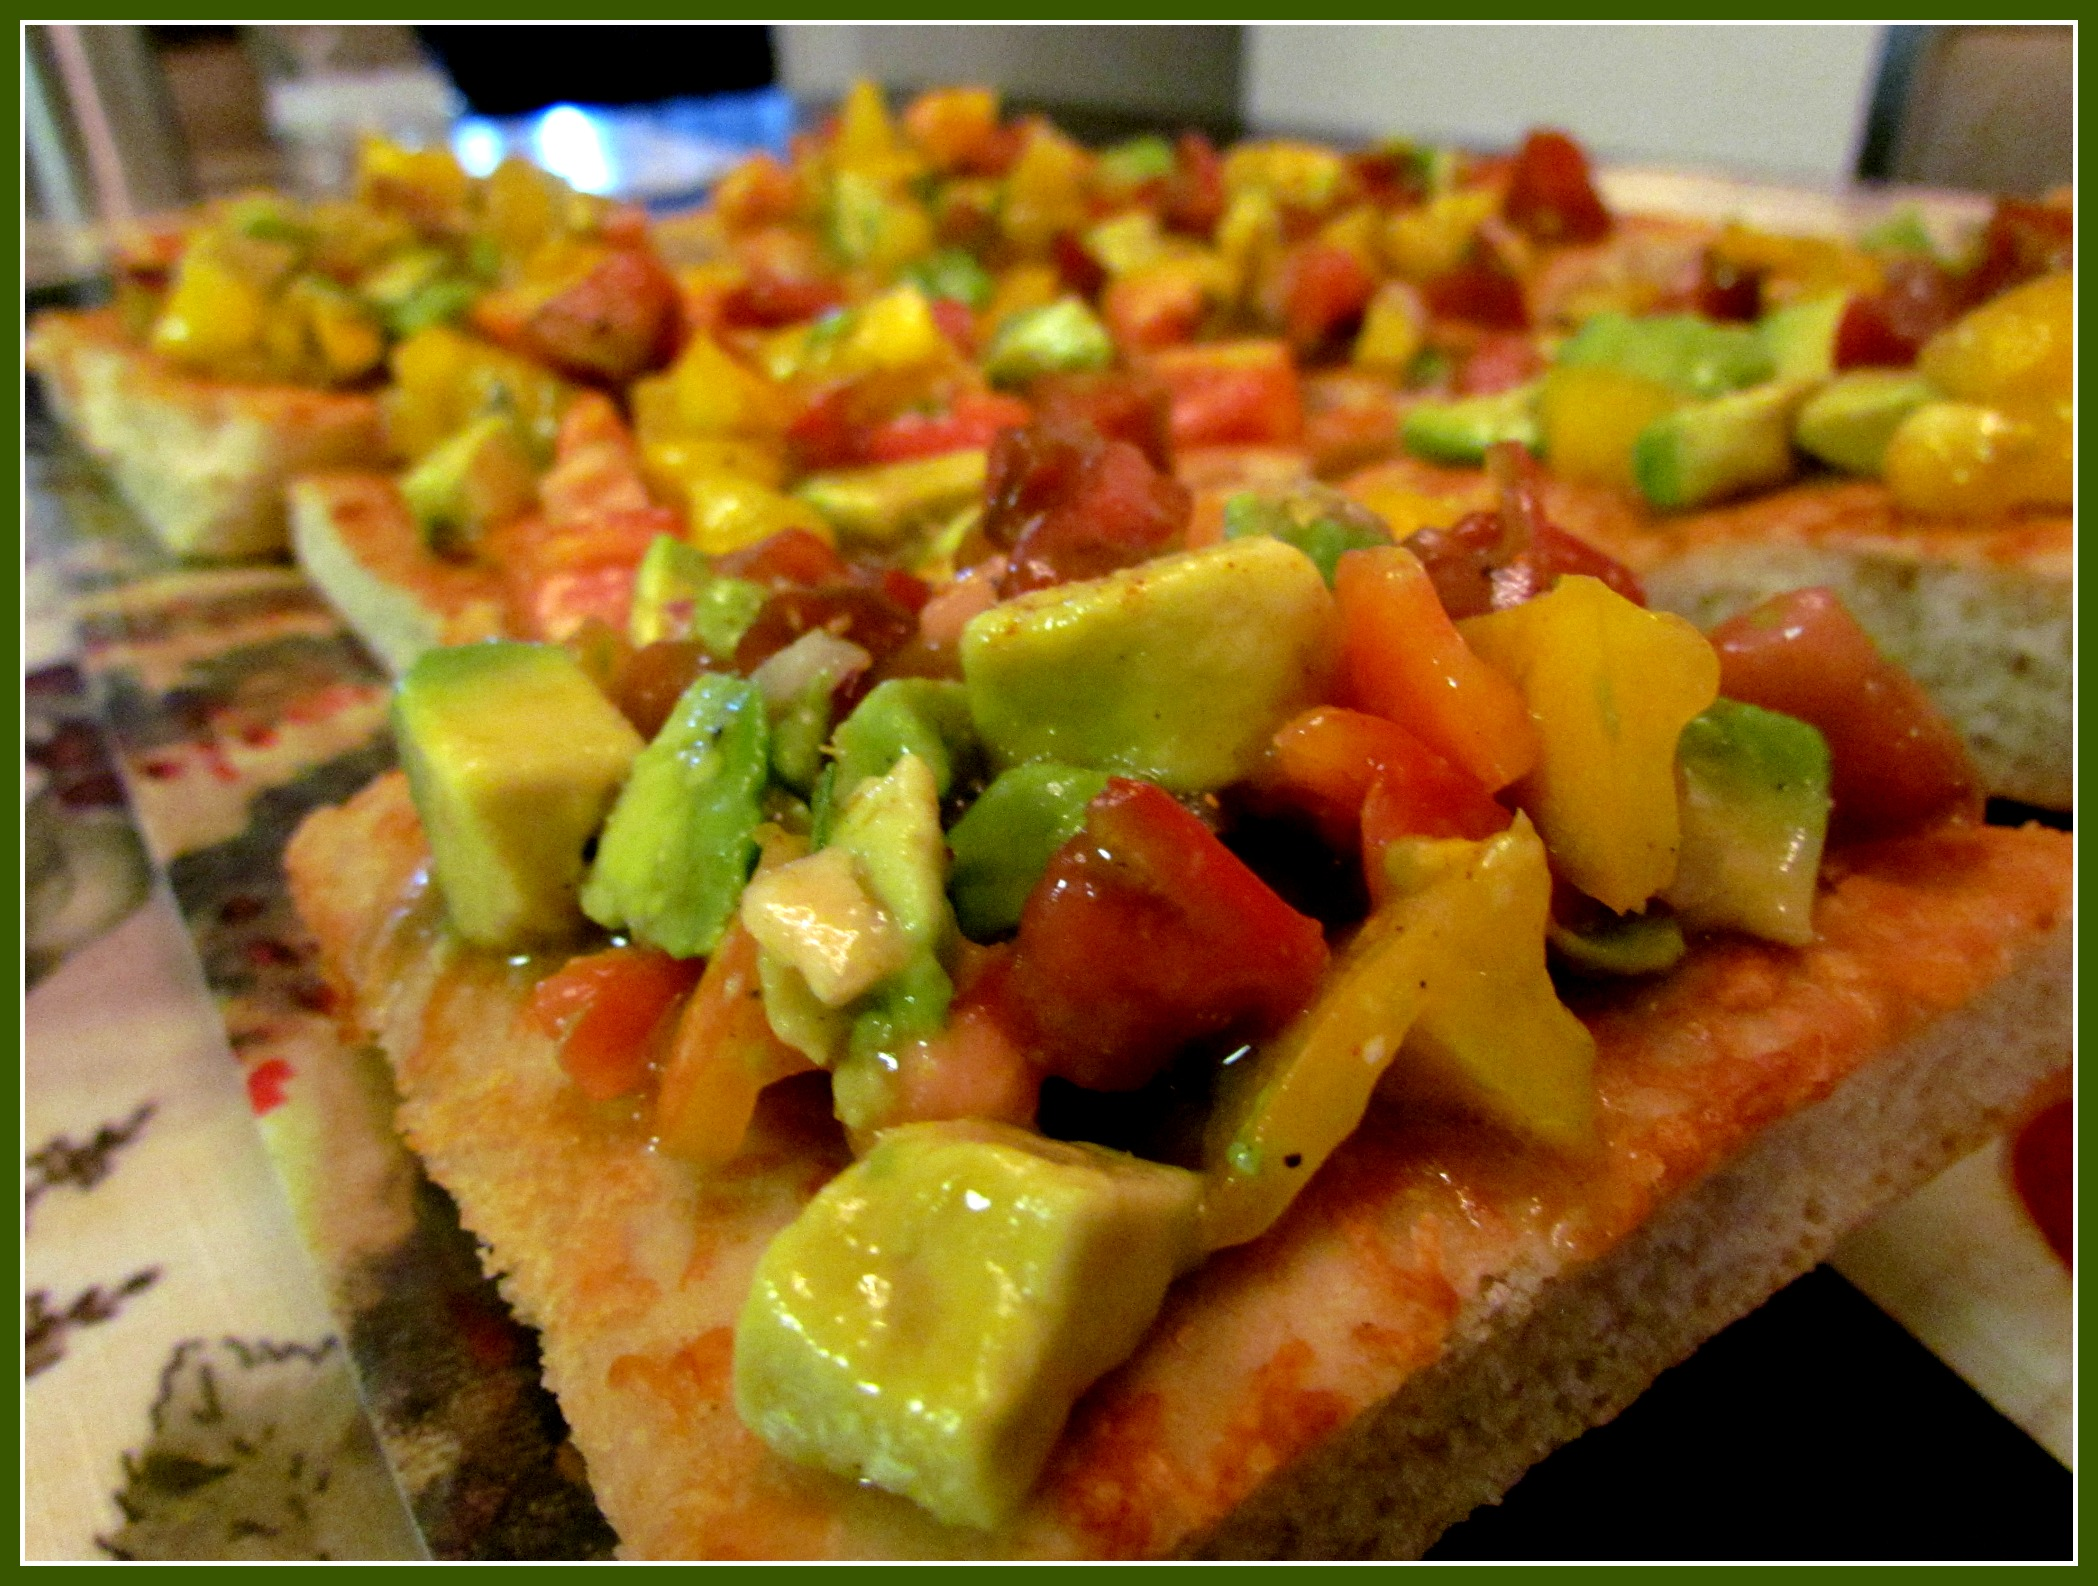 Heirloom & Avocado Bruschetta on Focaccia